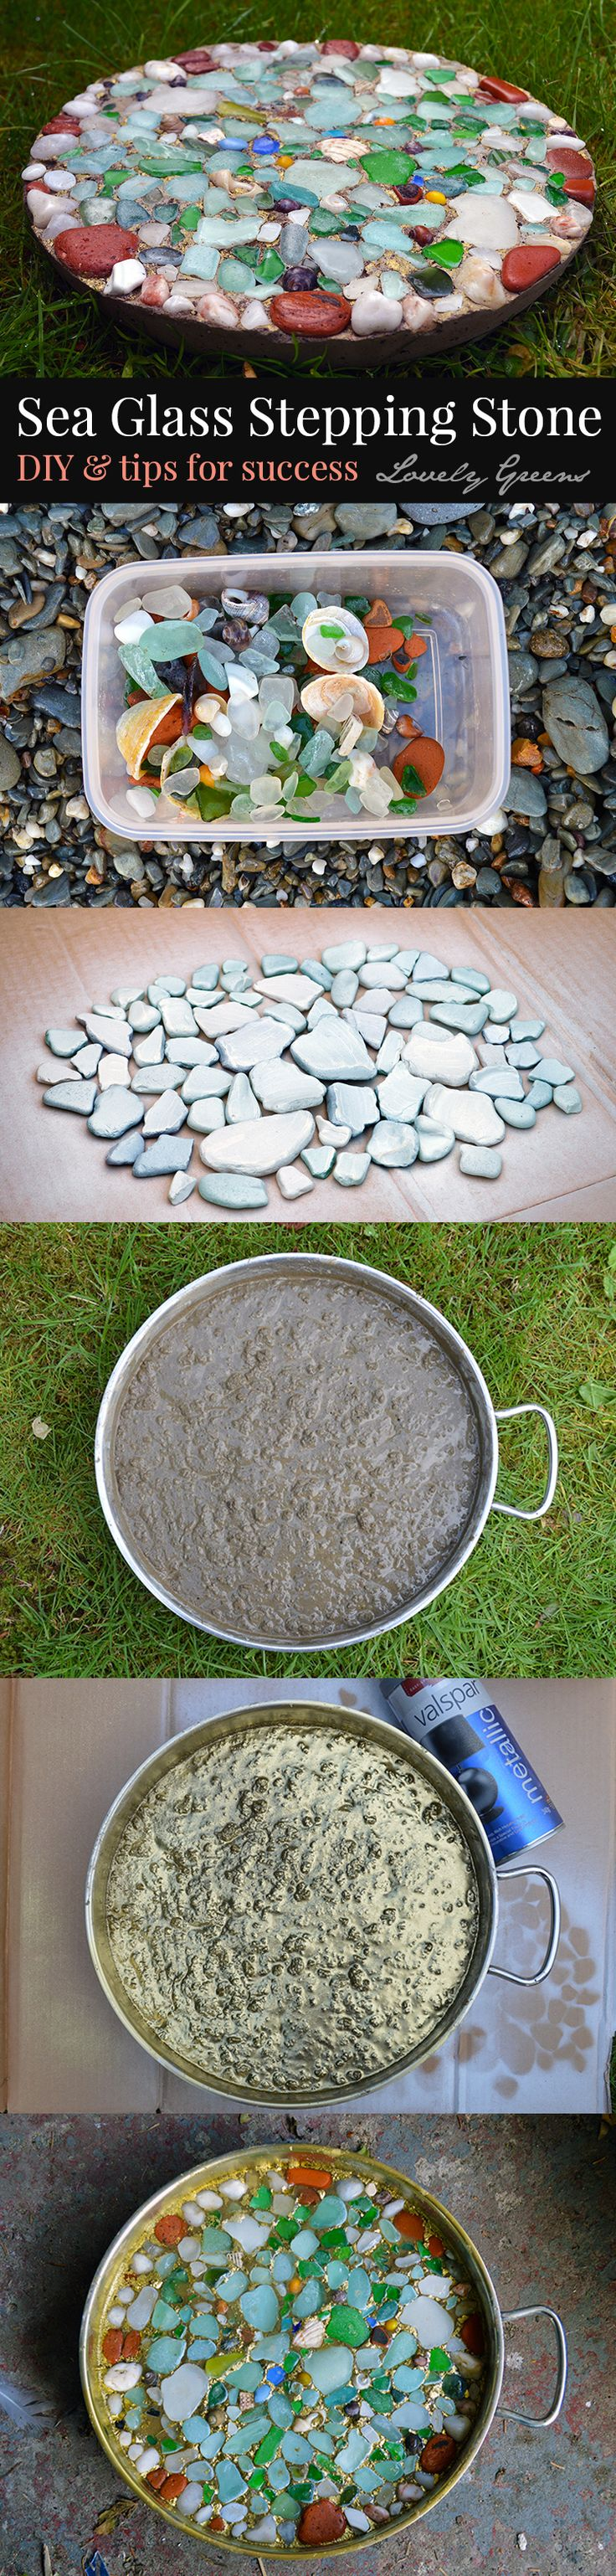 Preserve the memory of a beach visit and the wet look of sea glass in this diy project for garden stepping stones.